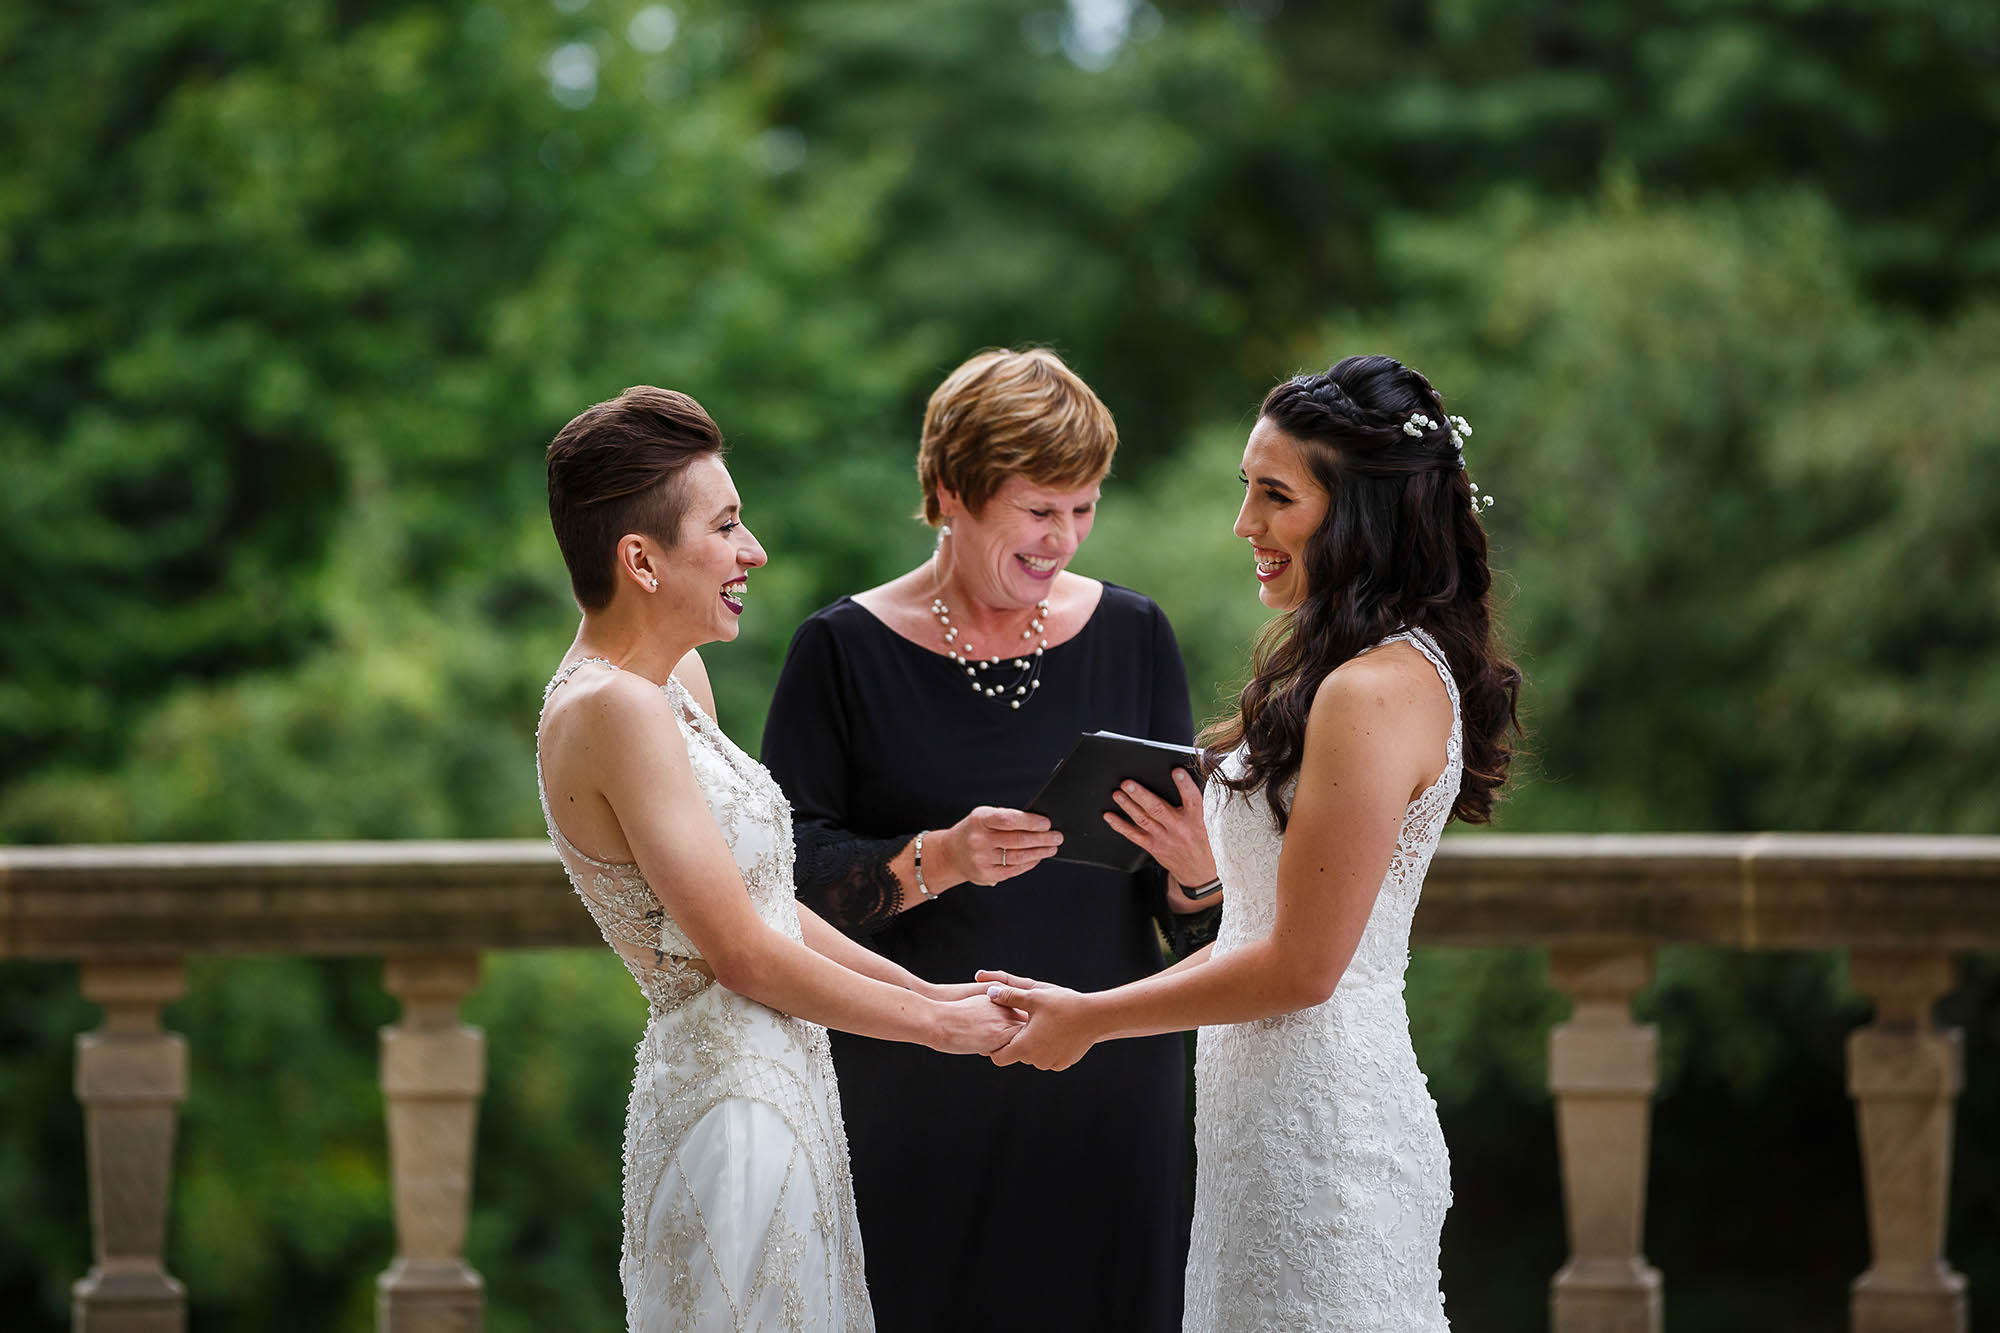 A lighthearted moment between two brides during their outdoor wedding ceremony at Stan Hywet Hall and Gardens in Akron, Ohio on a cement patio overlooking the lush green grounds.